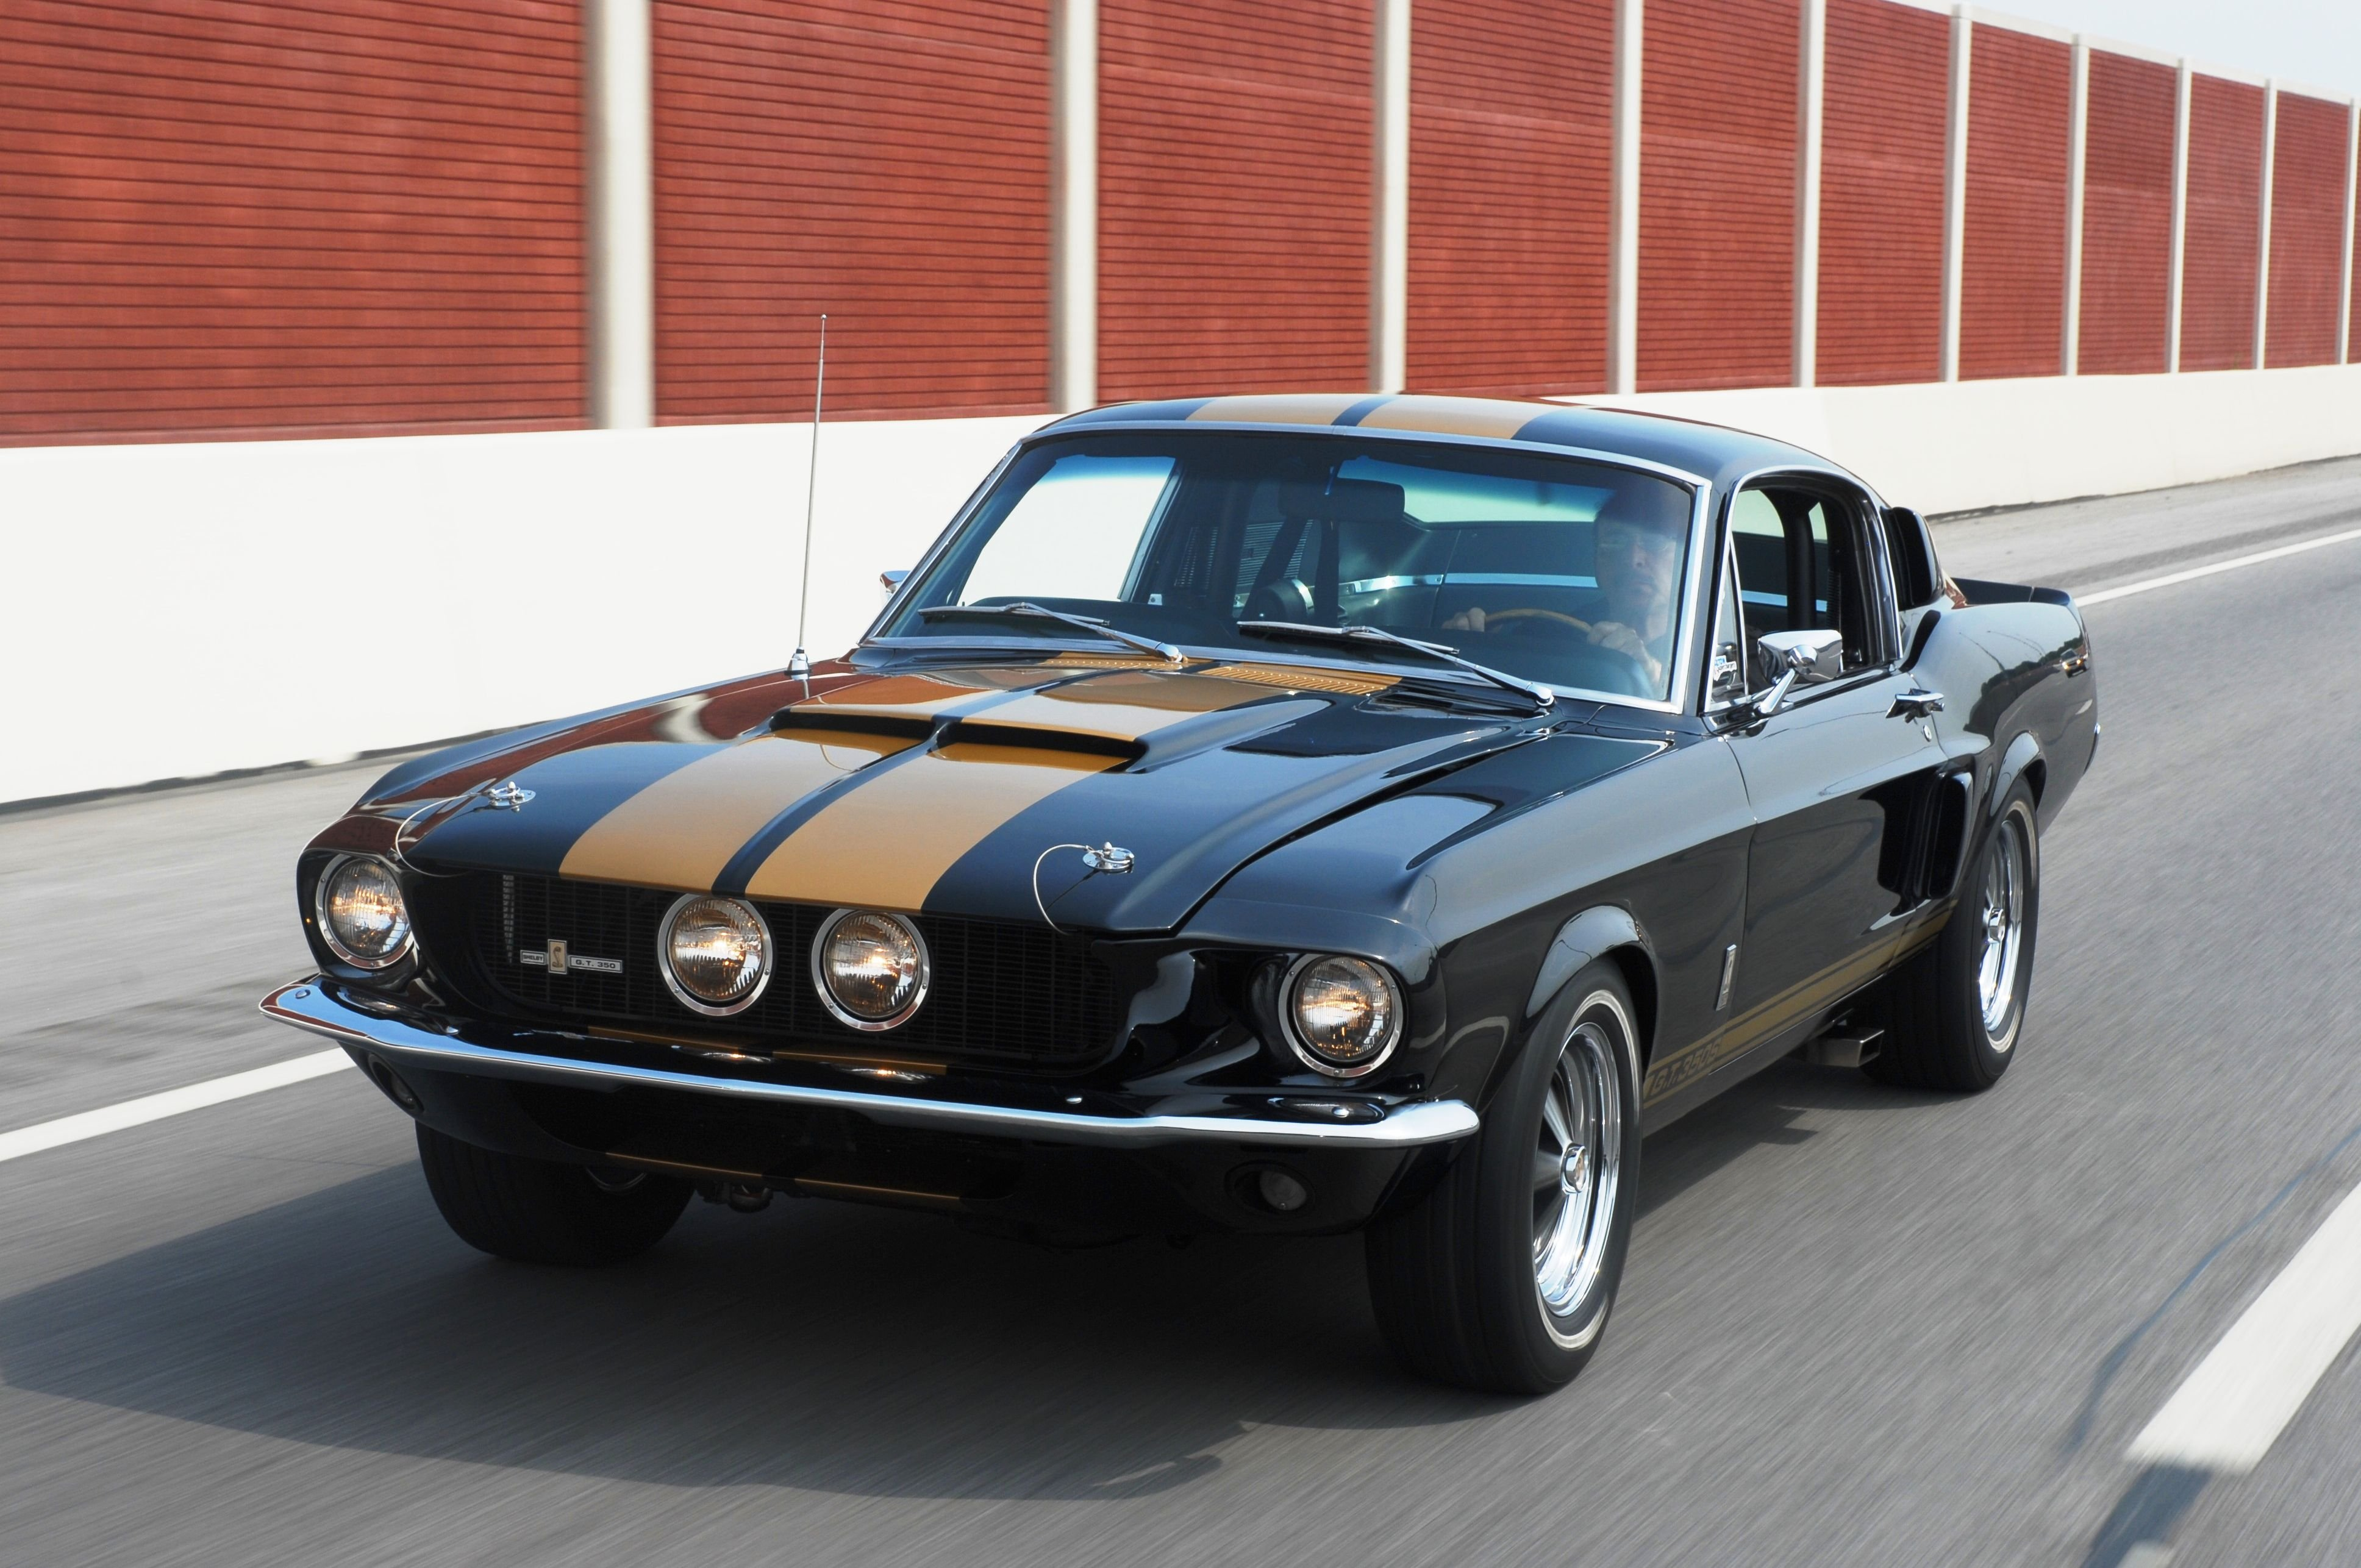 1967 ford mustang shelby gt 350 muscle classic old usa 3872x2572 01 wallpaper 3872x2572. Black Bedroom Furniture Sets. Home Design Ideas